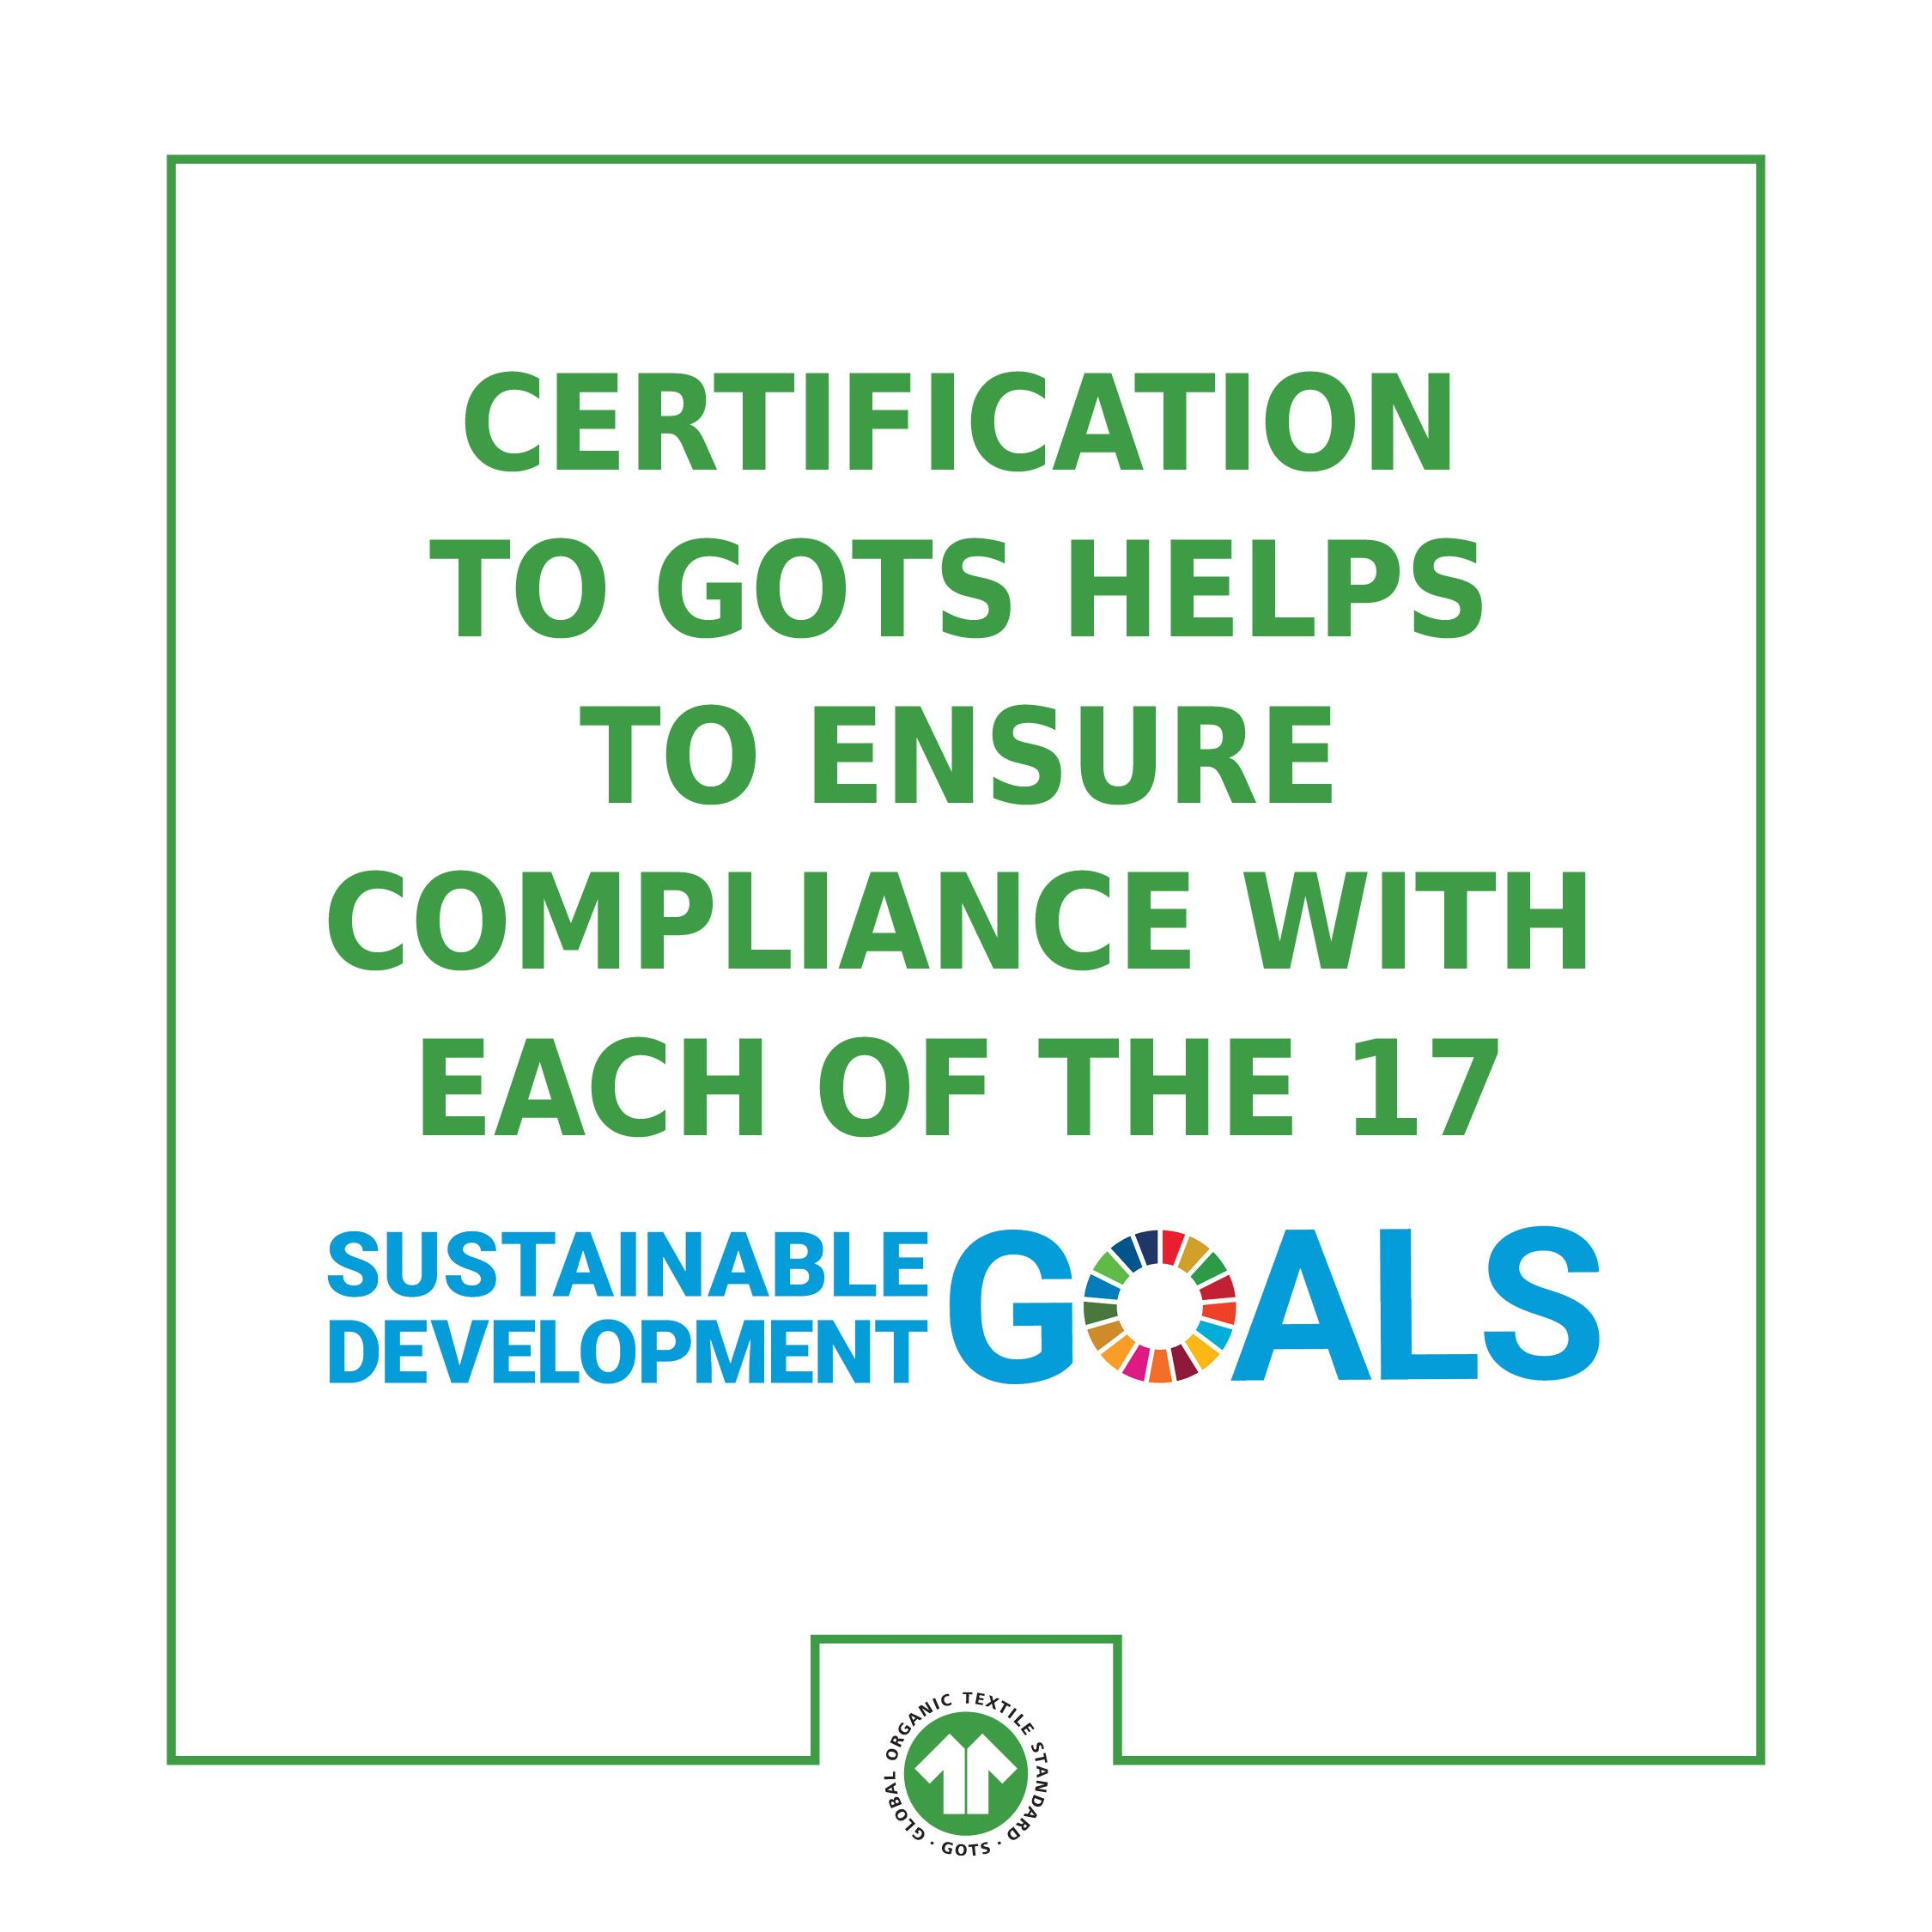 Graphic how GOTS supports the 17 Sustainable Development Goals